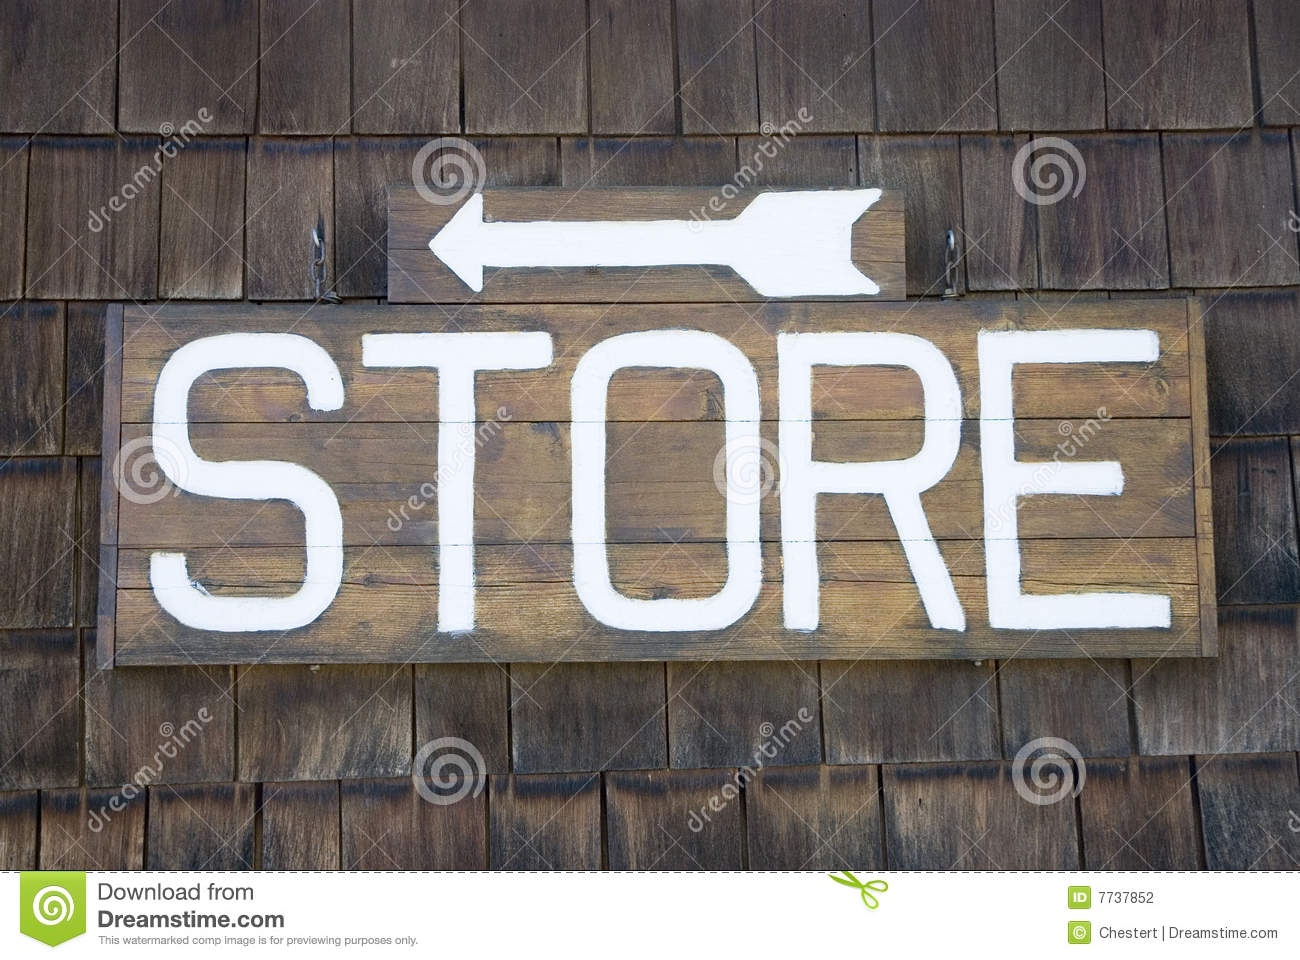 Get custom retail signs for the inside and outside of your store as well as custom signage for your upcoming sales and promotions. One day production! Products. Sign frames, riders, and more to help get the word out and attract attention.